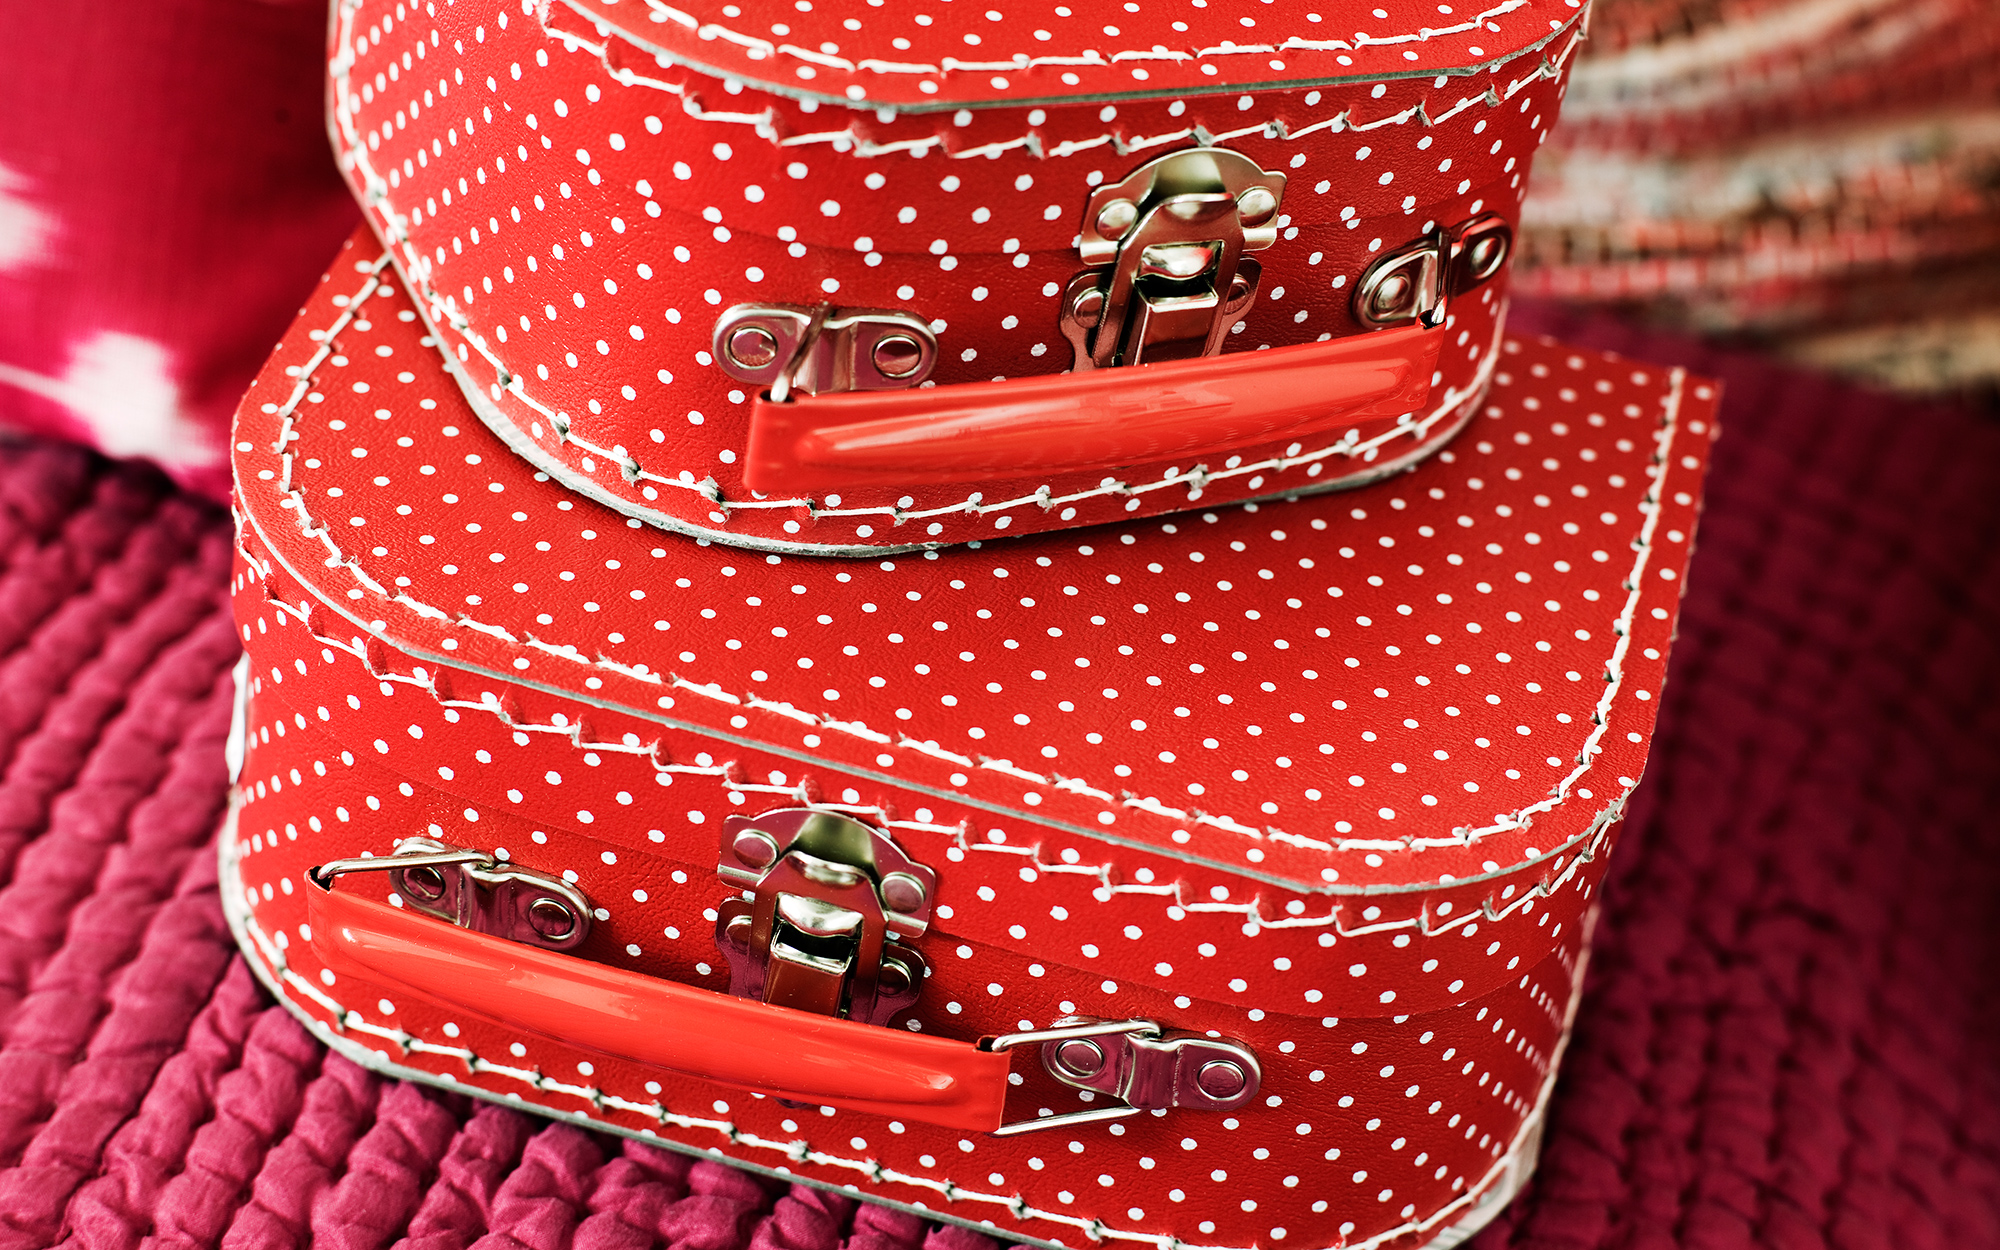 Small red suitcases